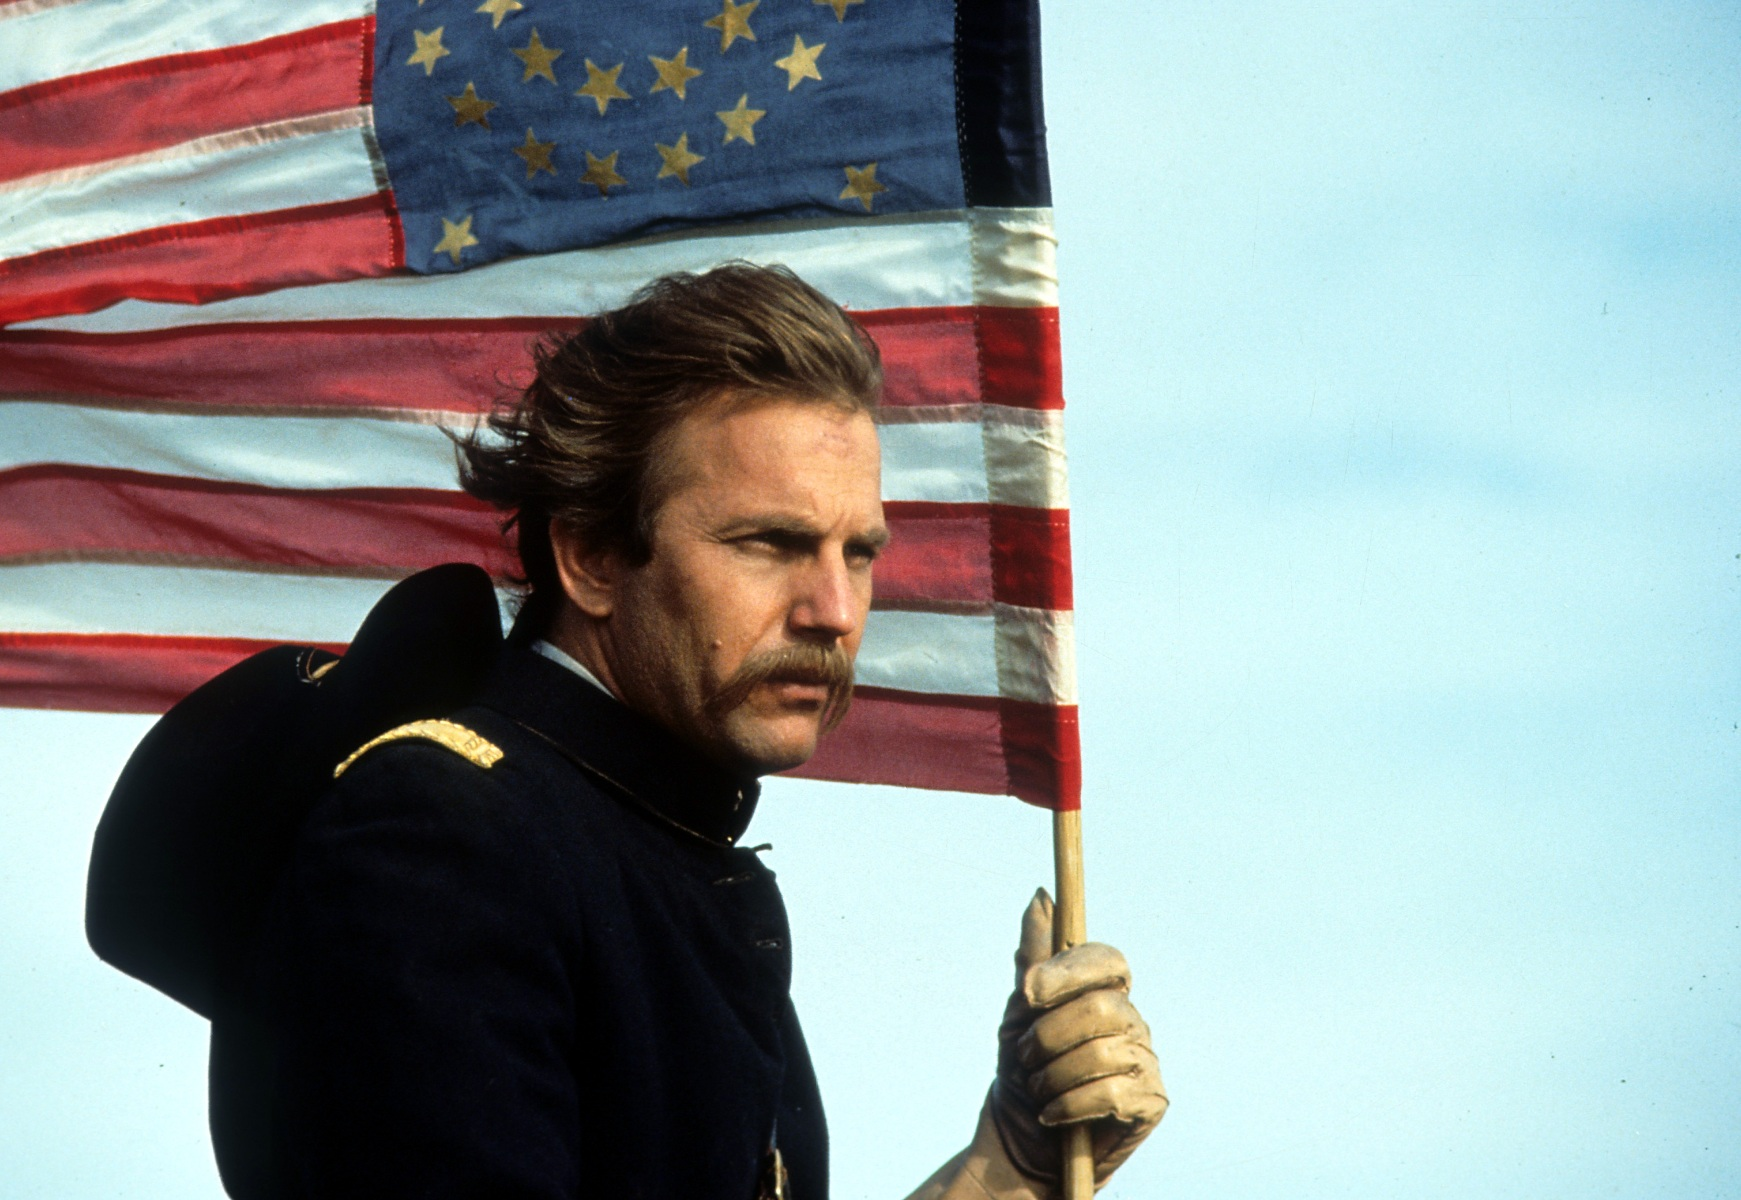 Kevin Costner holding an American flag in a scene from the film 'Dances With Wolves', 1990. (Getty Images)